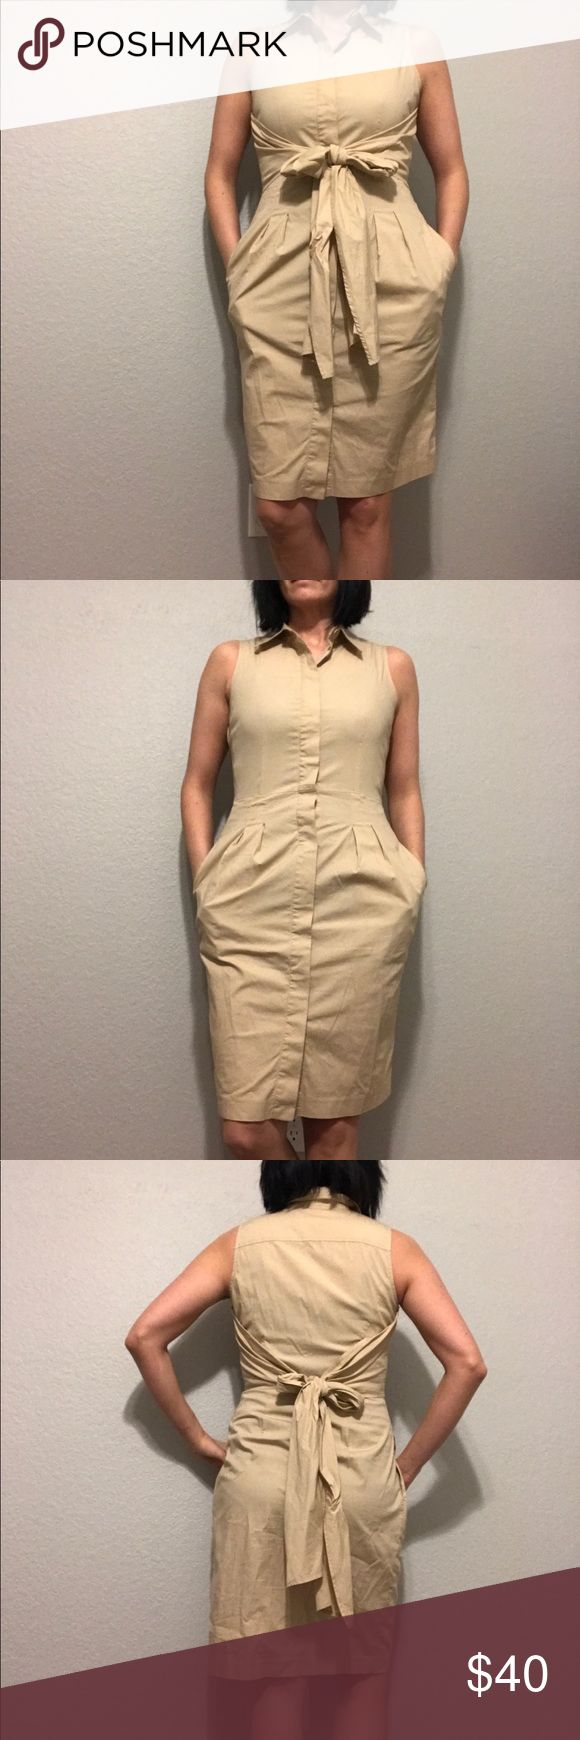 Talbots Button Up Tie Dress Tan shirt dress, button down,  belted  / 98% cotton, 2% spandex. I'm not sure if the tie goes in front or back 🙈 but it looks really cute either way! This also has pockets. Talbots Dresses